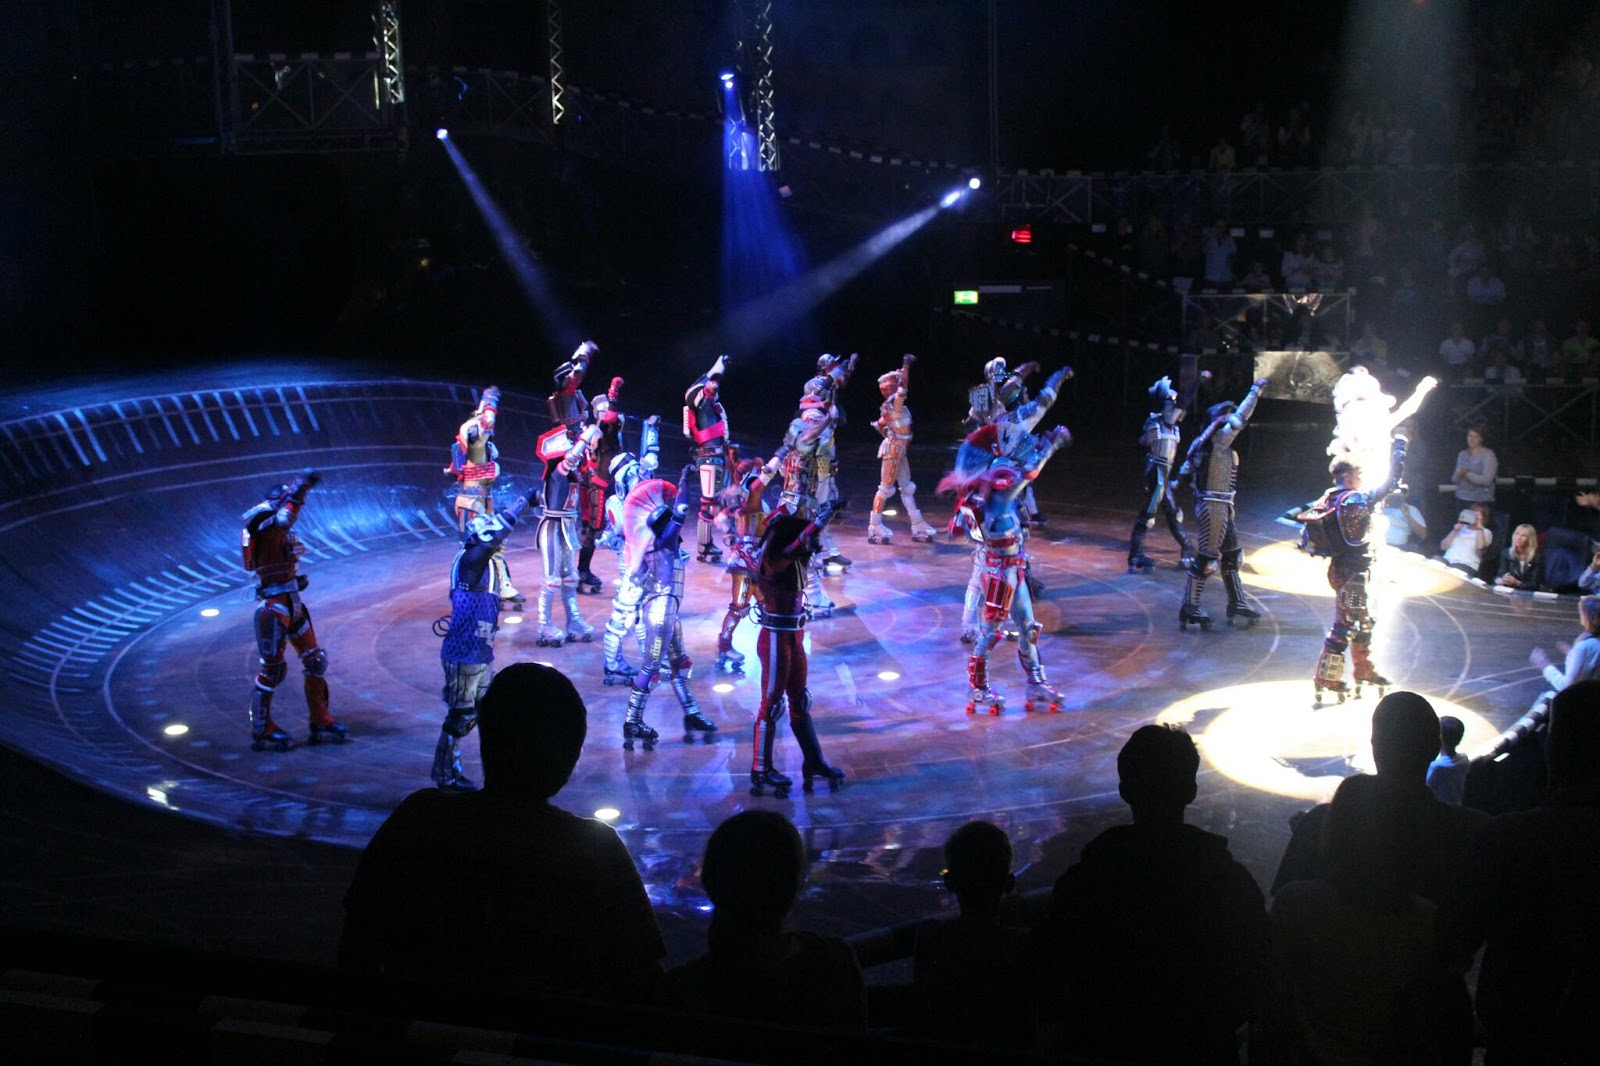 starlight express raucherwagen